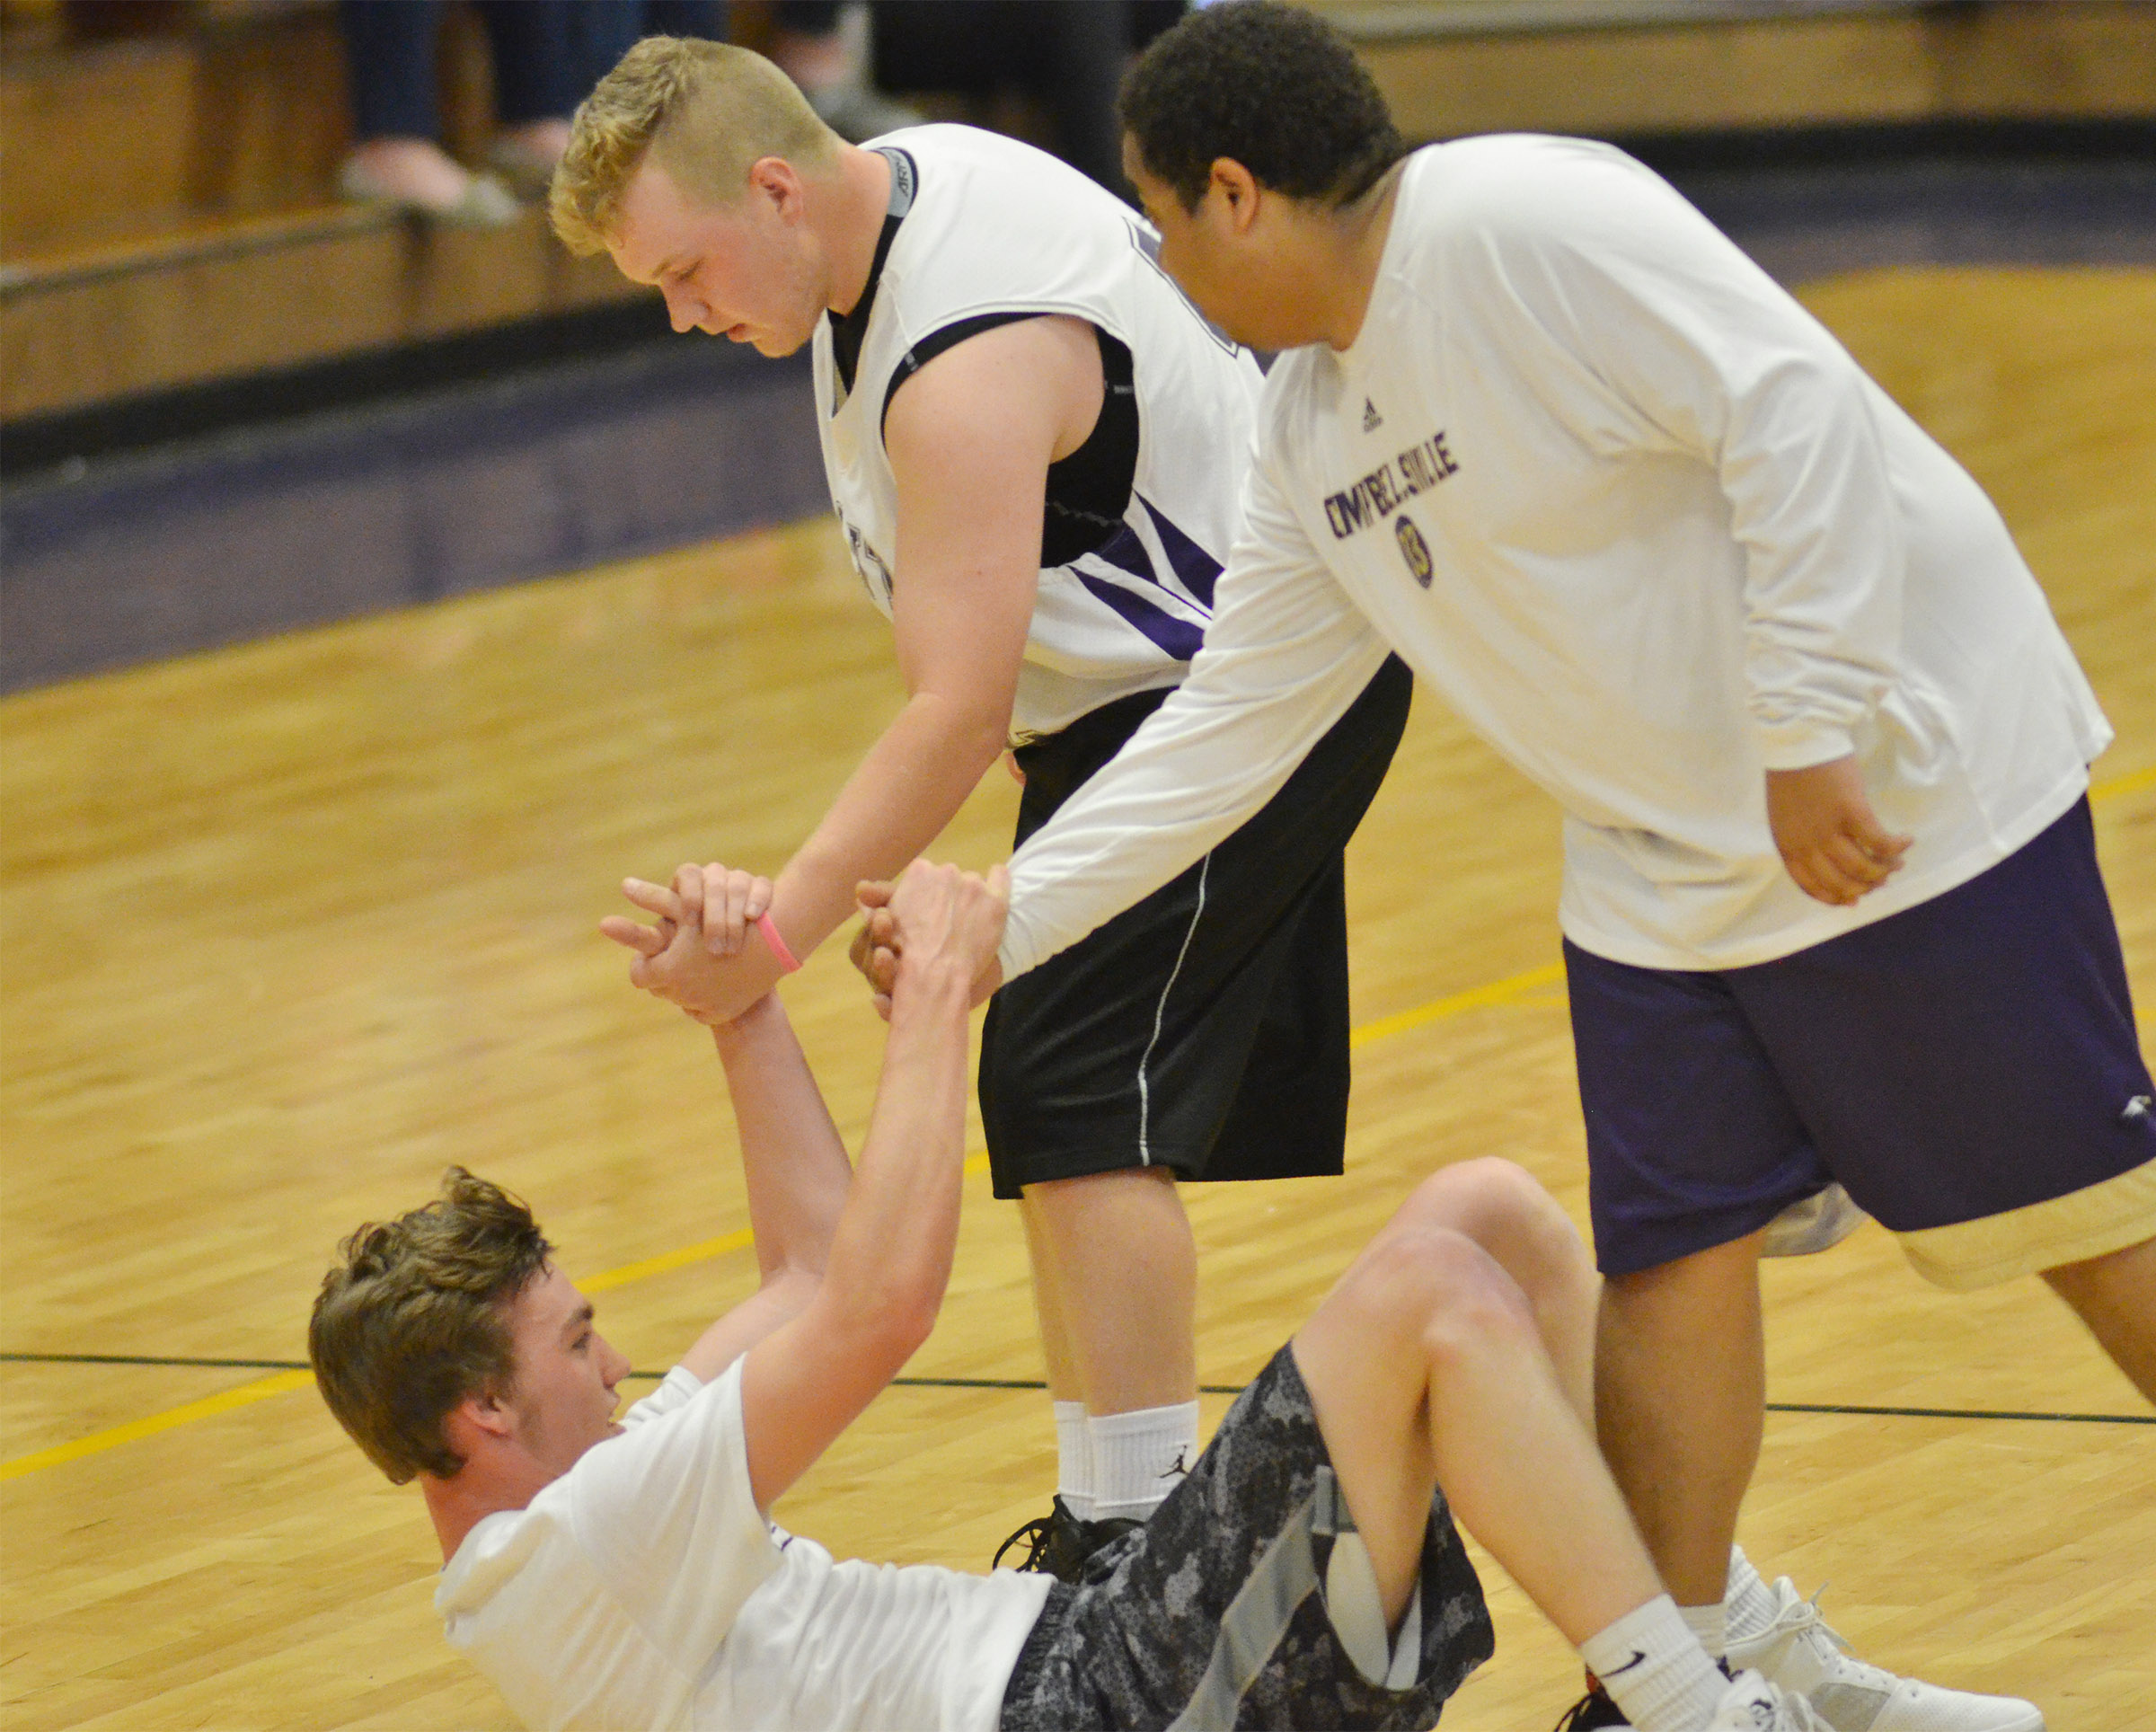 CHS seniors Noah Wagers, at left, and Ricky Smith-Cecil help classmate Zack Bottoms up after a play.